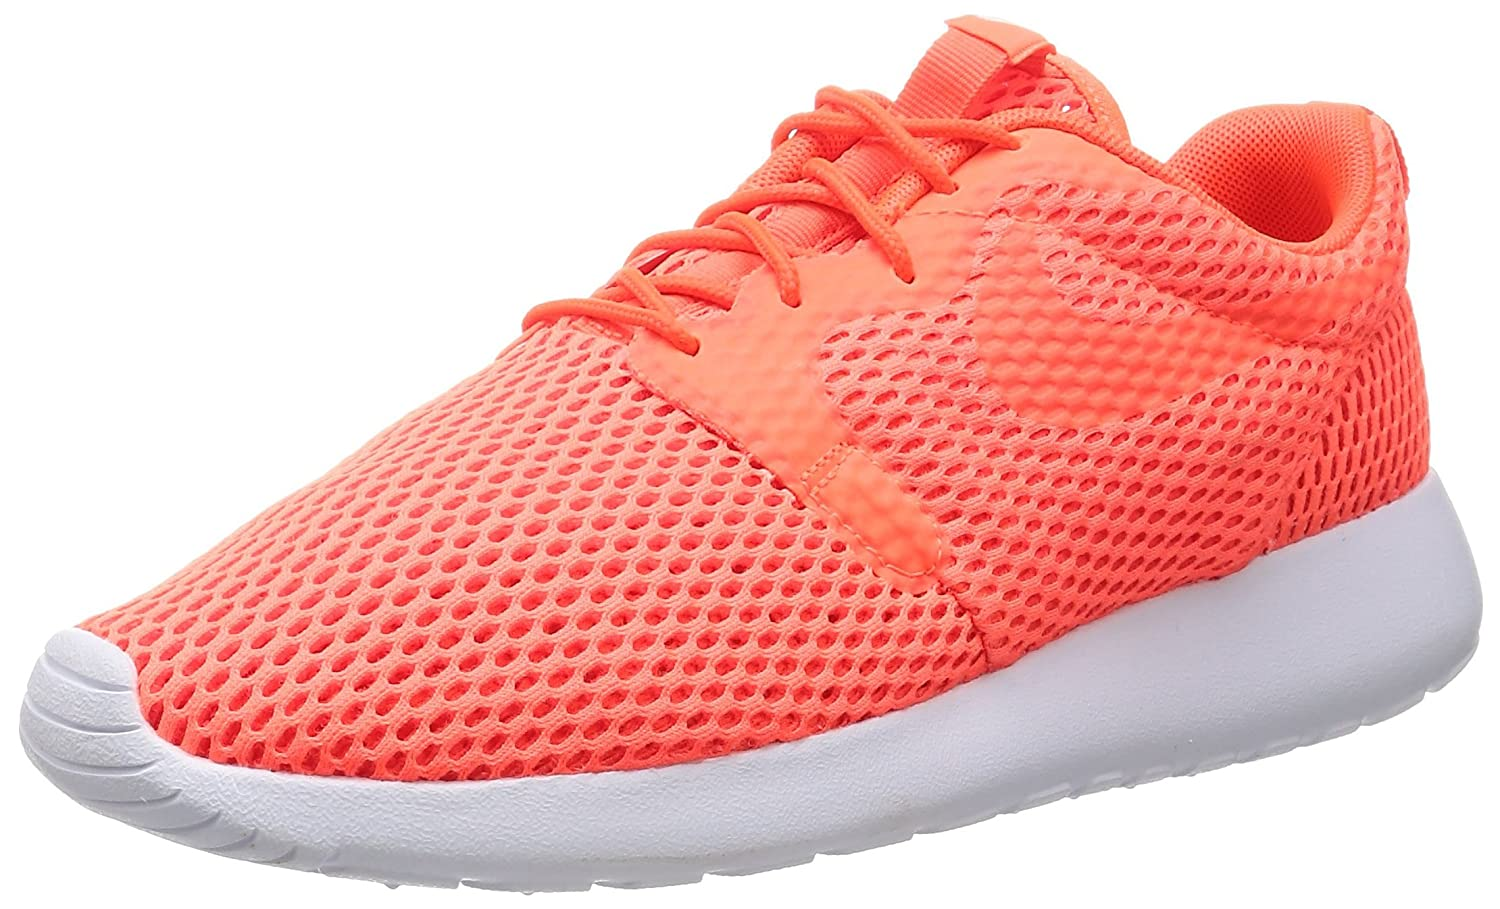 888173075293 Nike Herren Roshe One Hyperfuse Br Laufschuhe 44 EU Rot (Total  Crimson White) - associate-degree.de